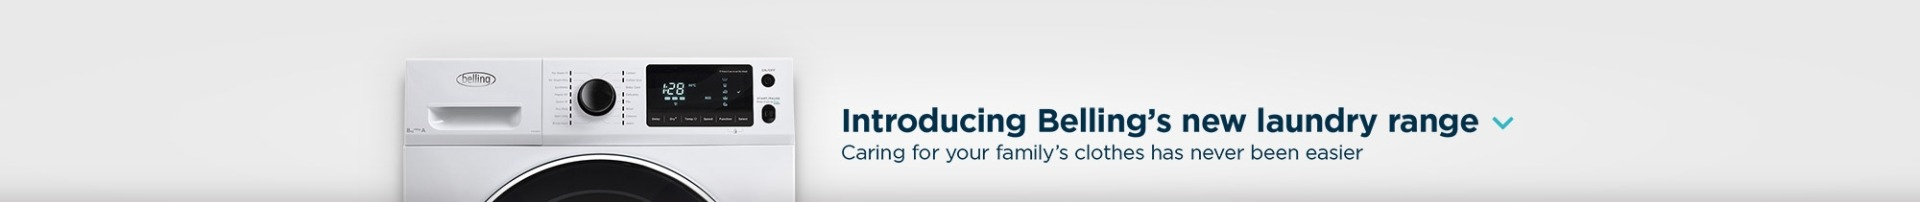 Introducing Belling's New Laundry Range.